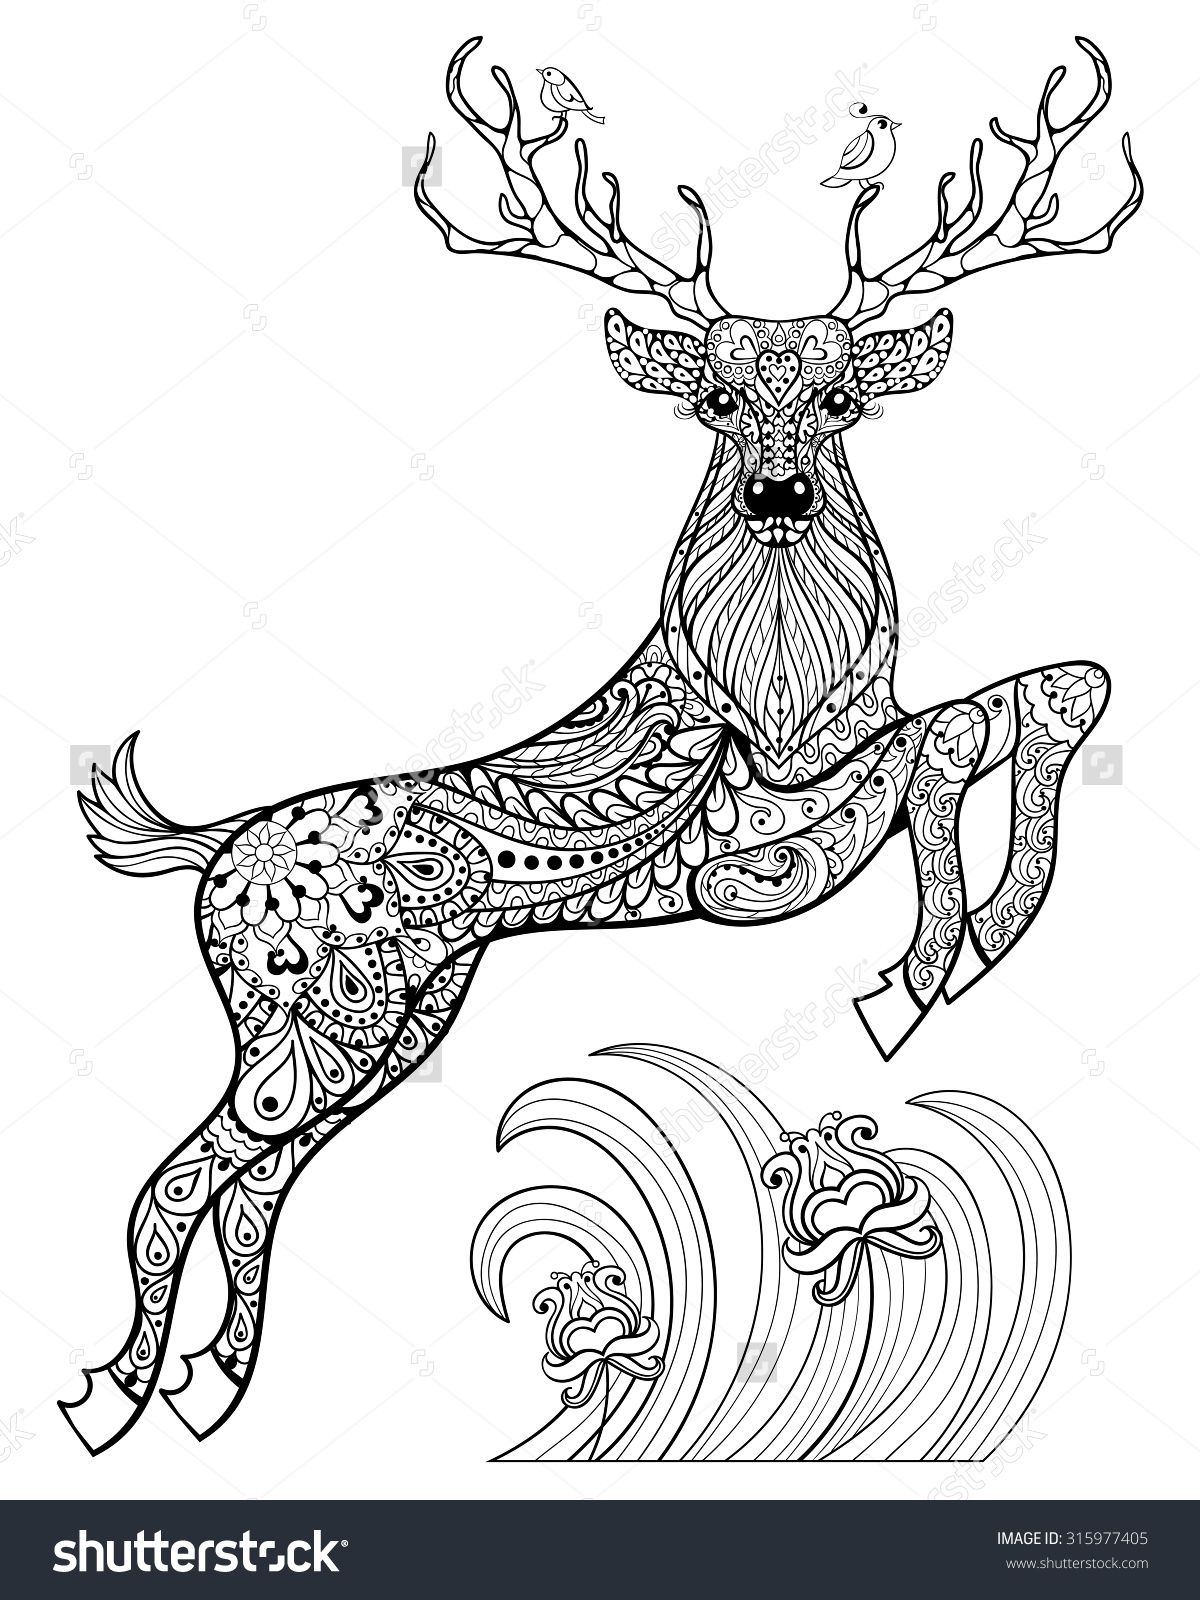 deer coloring pages for adults deer with birds in the grass